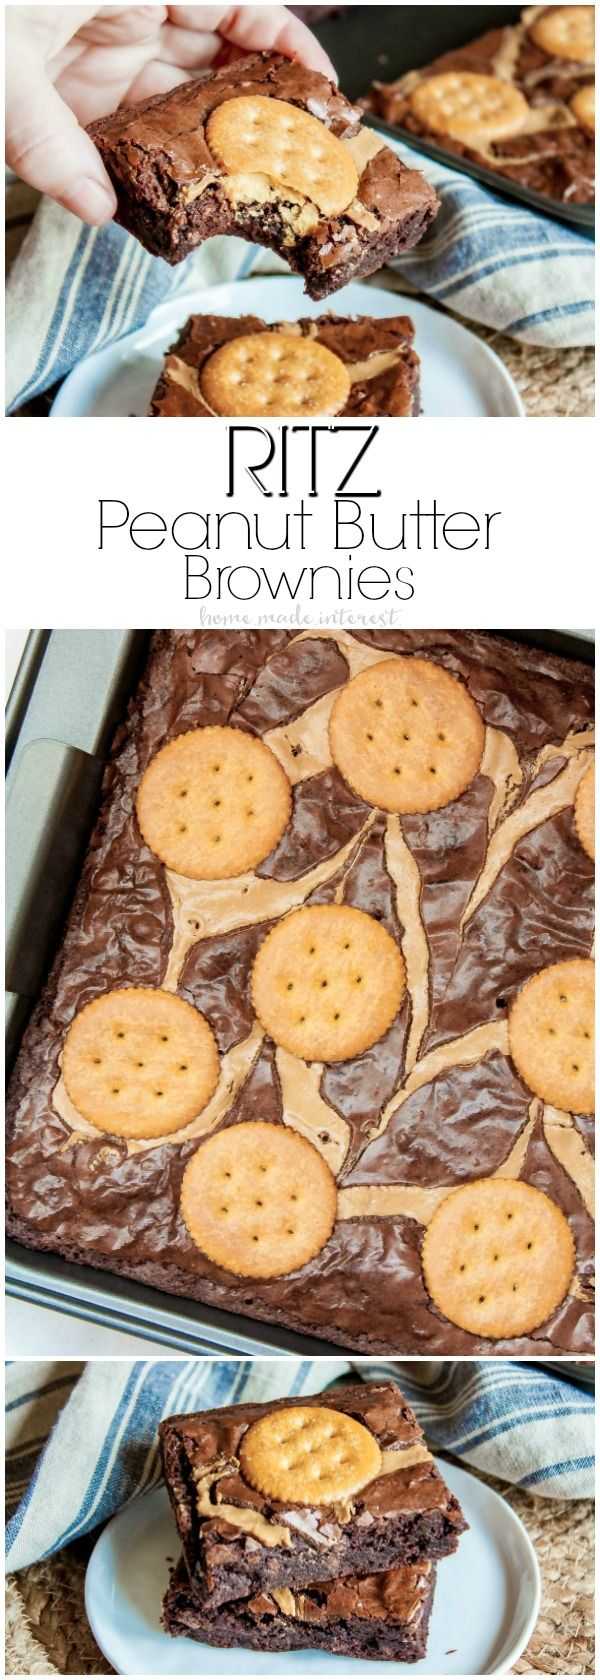 RITZ Peanut Butter Brownies | This sweet and salty dessert recipe is super easy to make and so good!   There will be live demos with RITZ crackers and Peter Pan® Creamy Peanut Butter in Walmart on 4/15! Make sure you stop by to get a free recipe handout with coupon, and spin for a chance to win a Walmart gift card or a free box of RITZ! #RITZpiration #ad